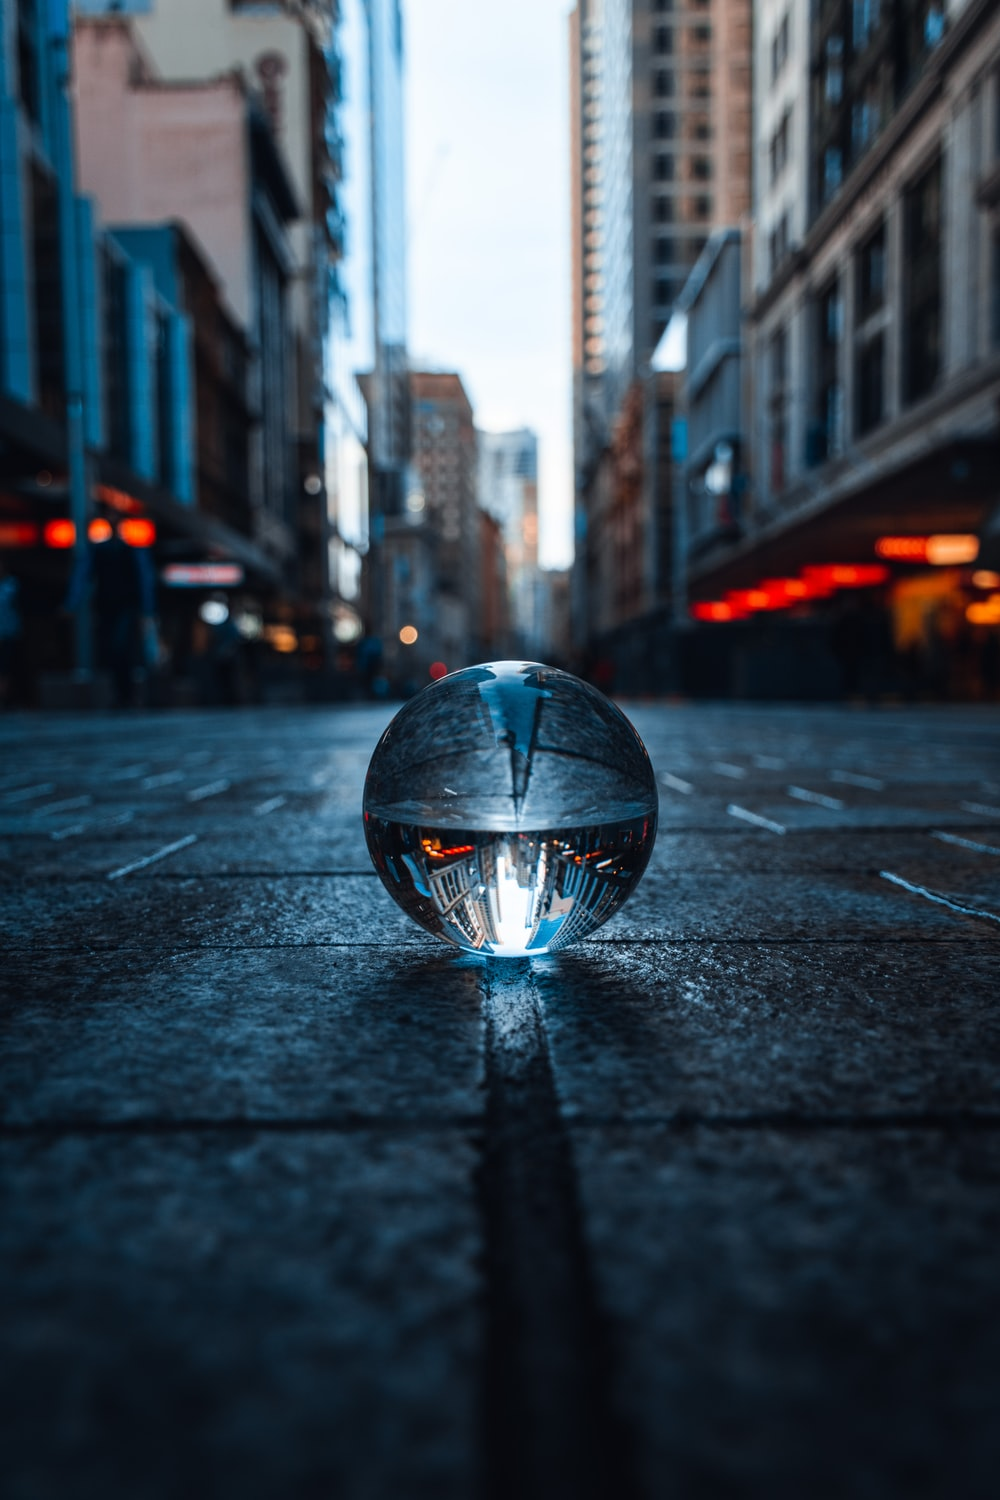 clear glass ball on road during nightime